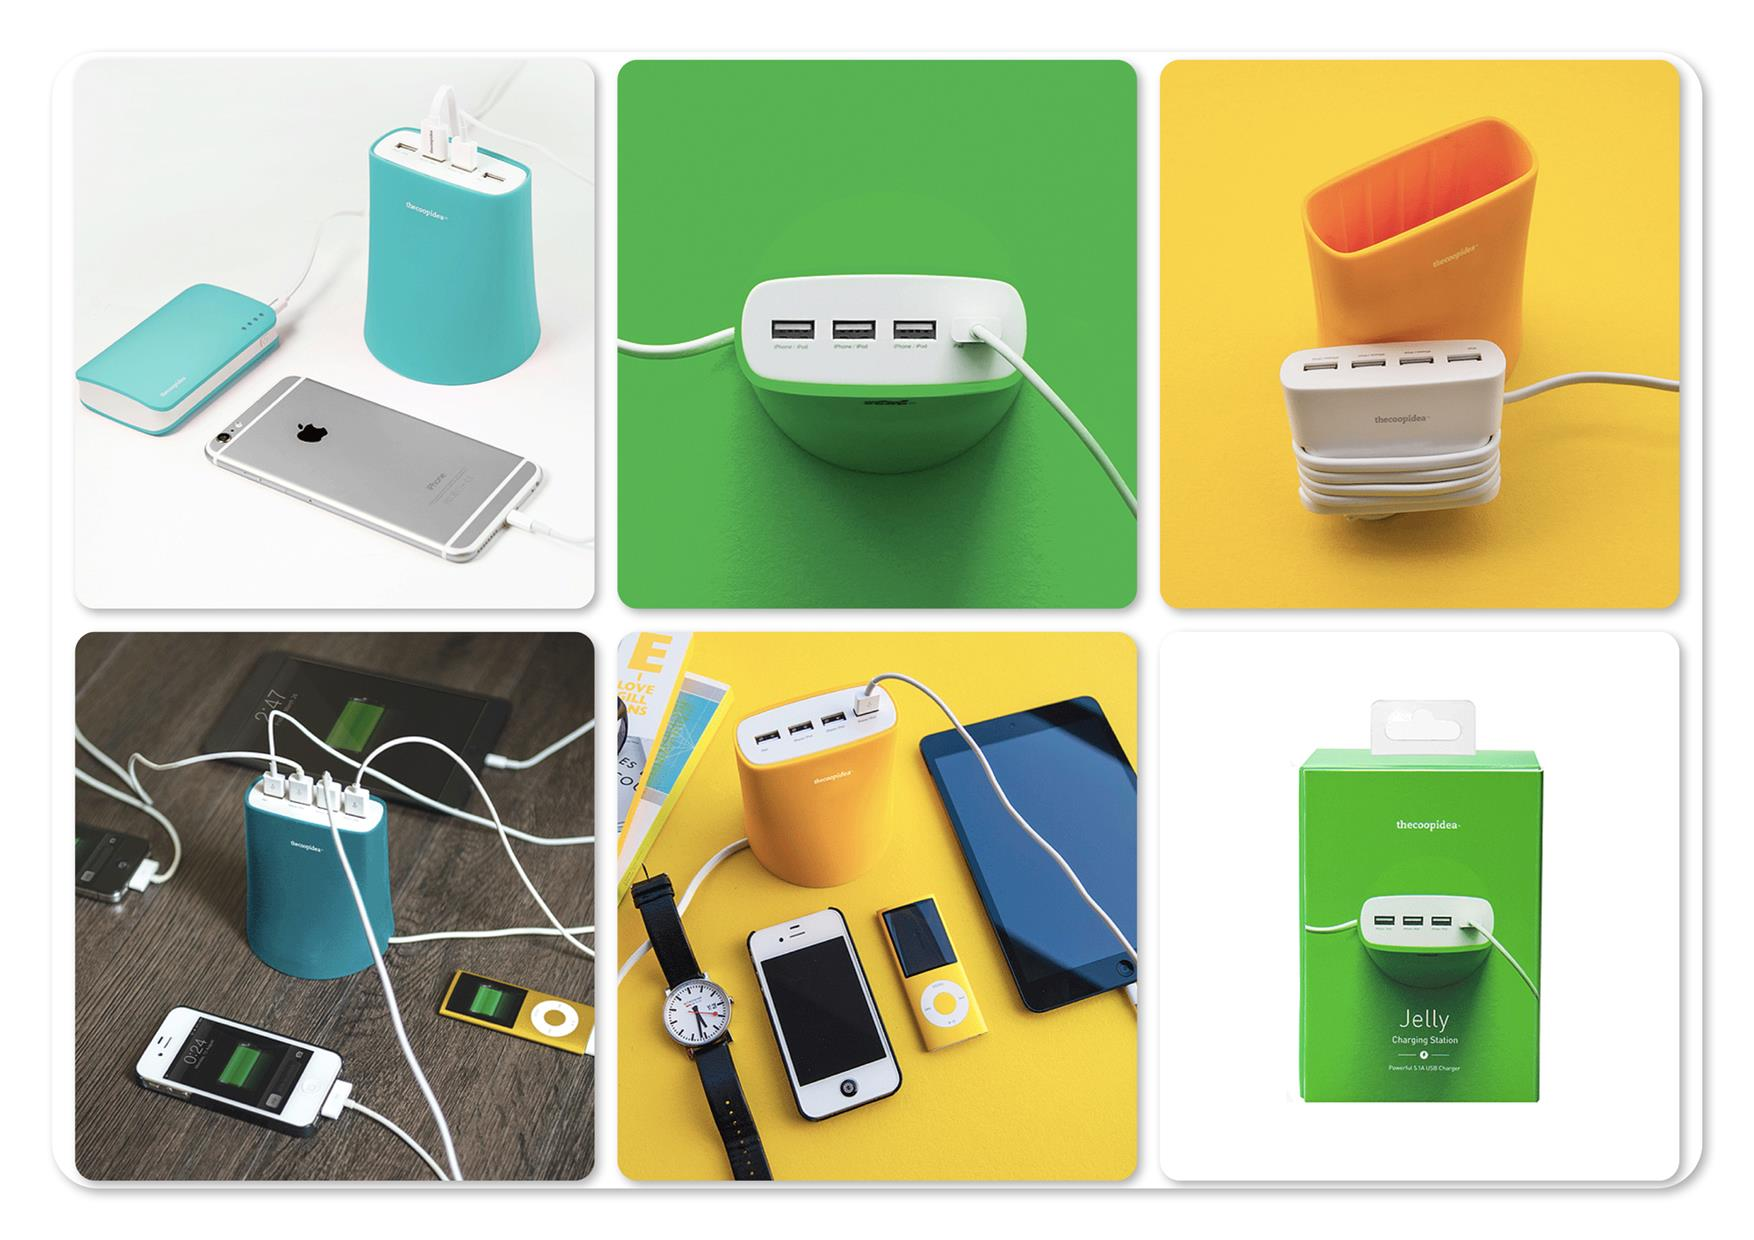 Bdotcom = TheCoopIdea Jelly 5.1A 4 Port USB Charging Station (Green)